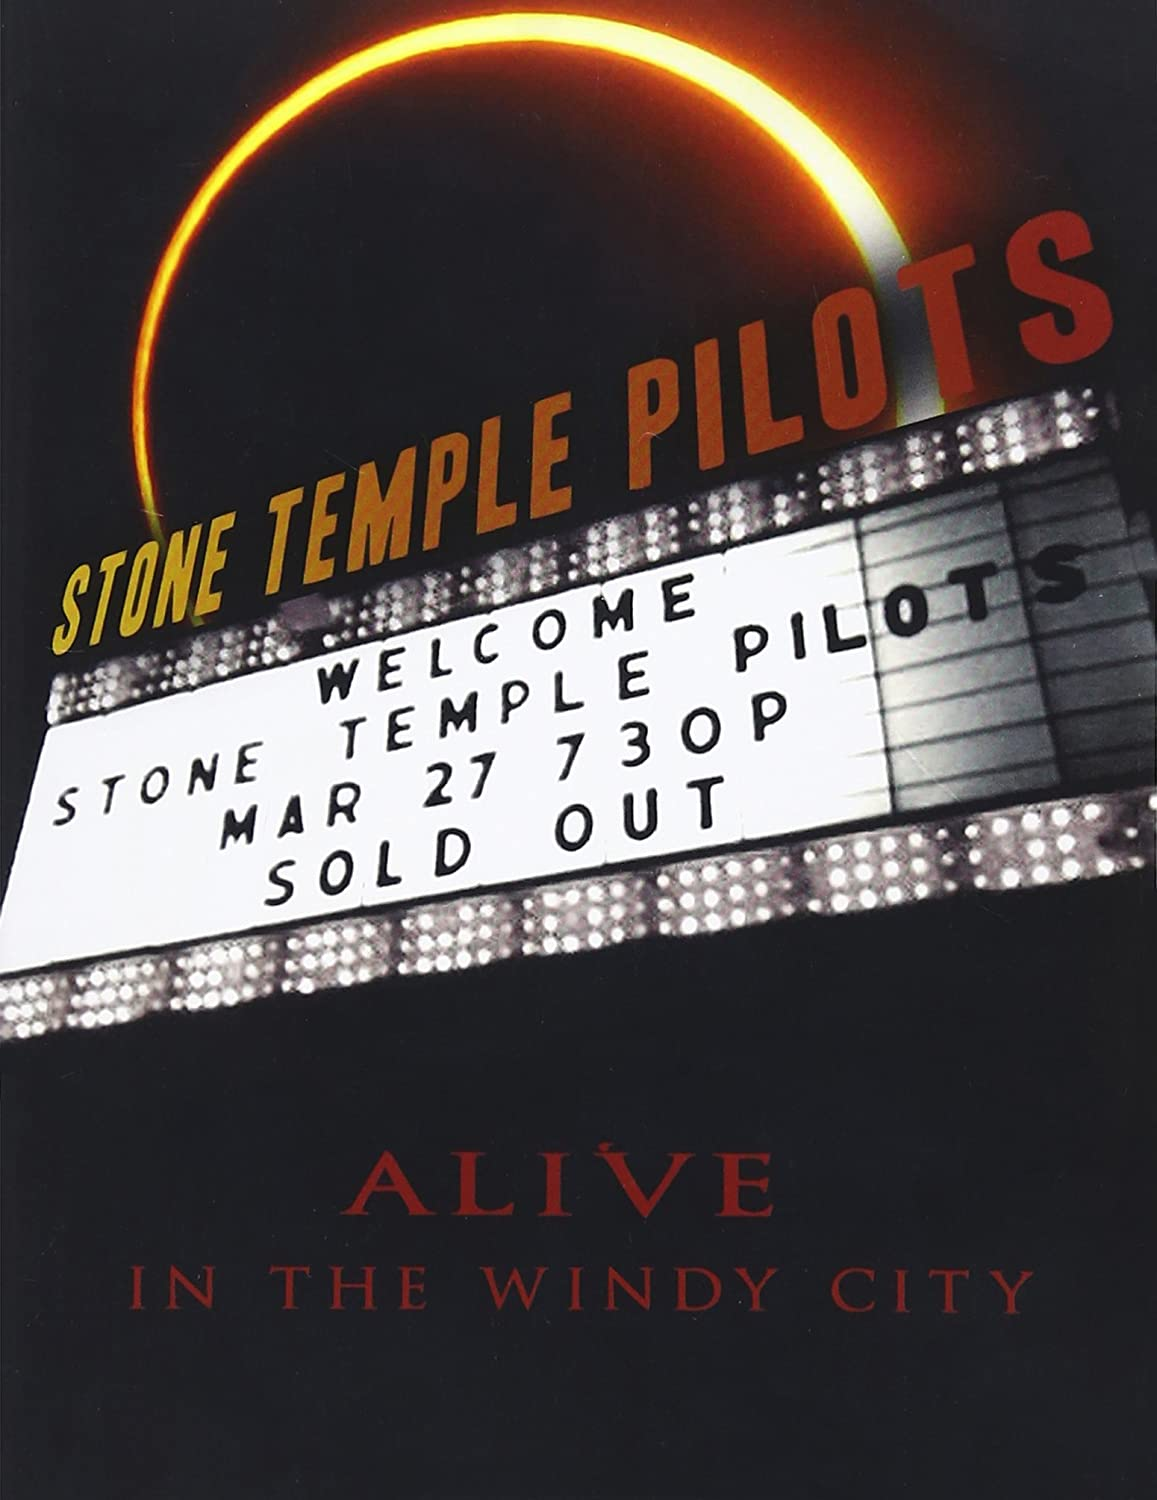 Amazon.com: Stone Temple Pilots: Alive in the Windy City DVD: Stone Temple  Pilots: Movies & TV